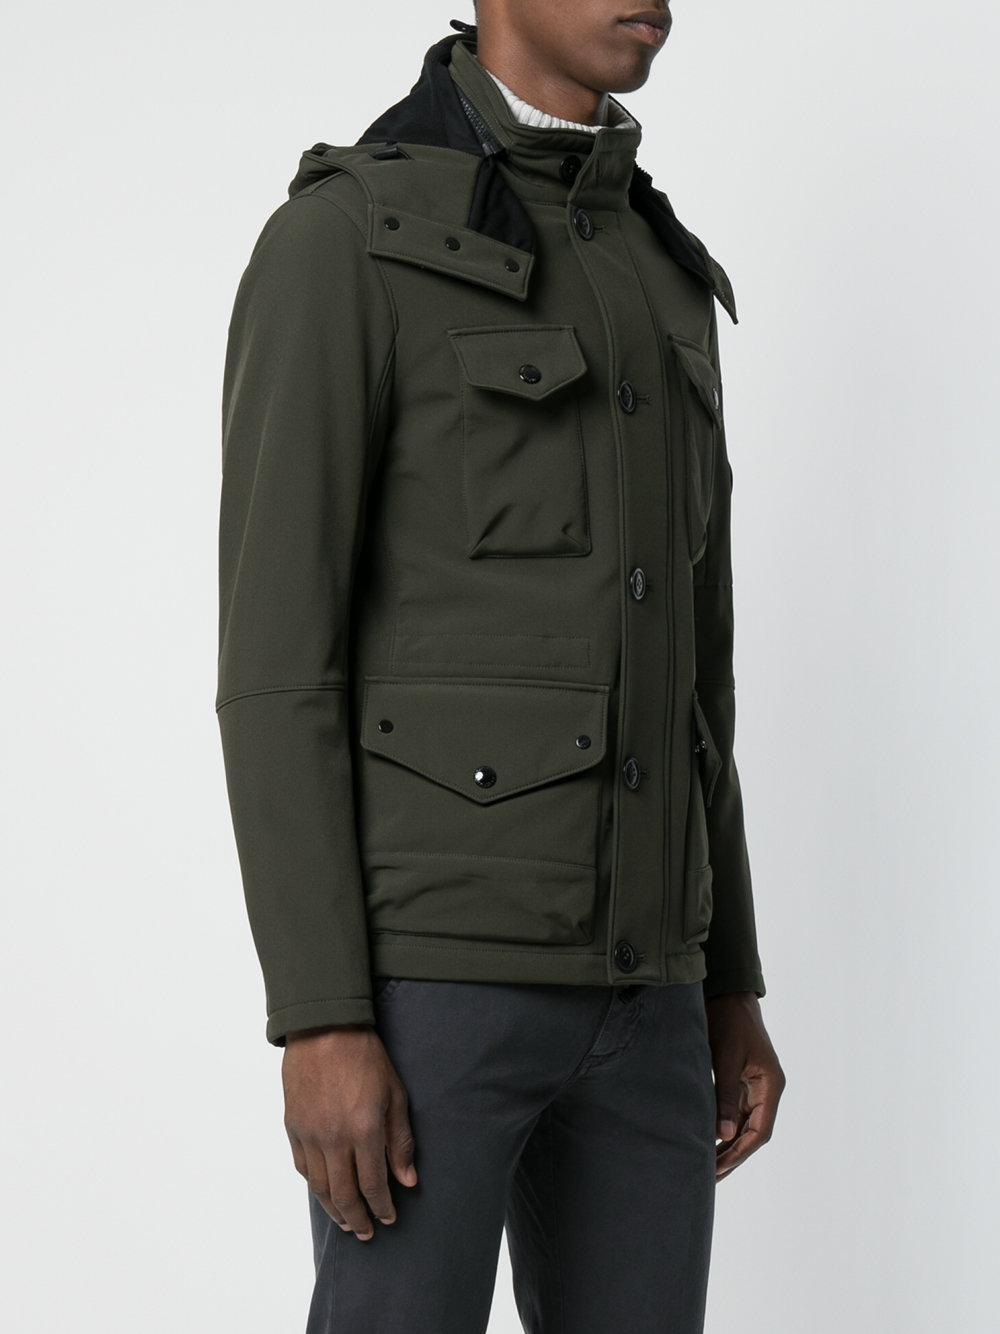 C P Company Cotton Fitted Military Jacket in Green for Men